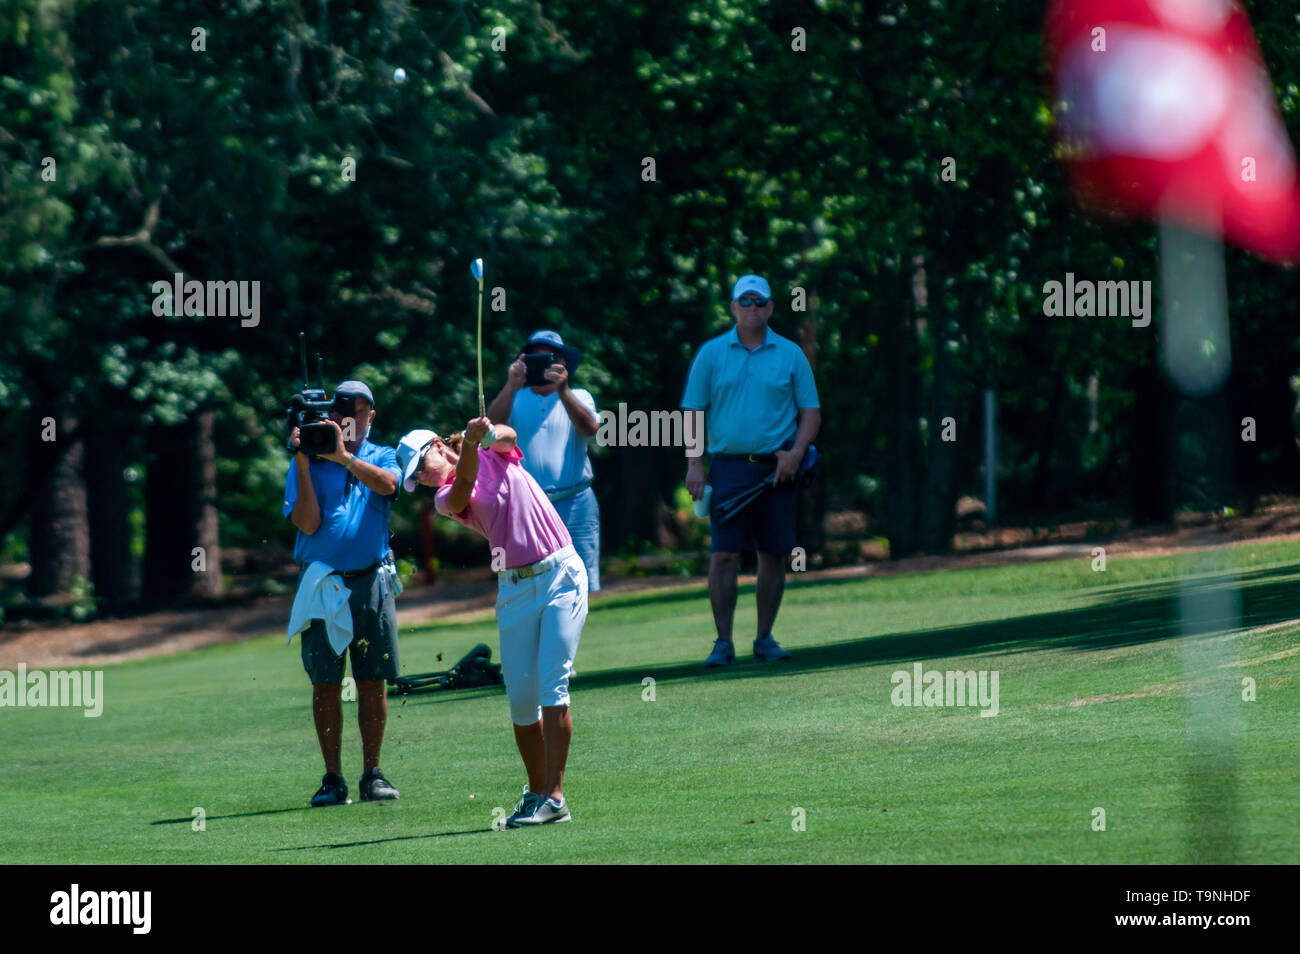 Southern Pines, North Carolina, USA. 19th May, 2019. May 19, 2019 - Southern Pines, North Carolina, US - HELEN ALFREDSSON of Sweden won the USGA's 2nd U.S. Senior Women's Open Championship at Pine Needles Lodge & Golf Club, May 19, 2019 in Southern Pines, North Carolina. Alfredsson carded a final round of 72, for a 285 total for the tournament. Credit: Timothy L. Hale/ZUMA Wire/Alamy Live News - Stock Image